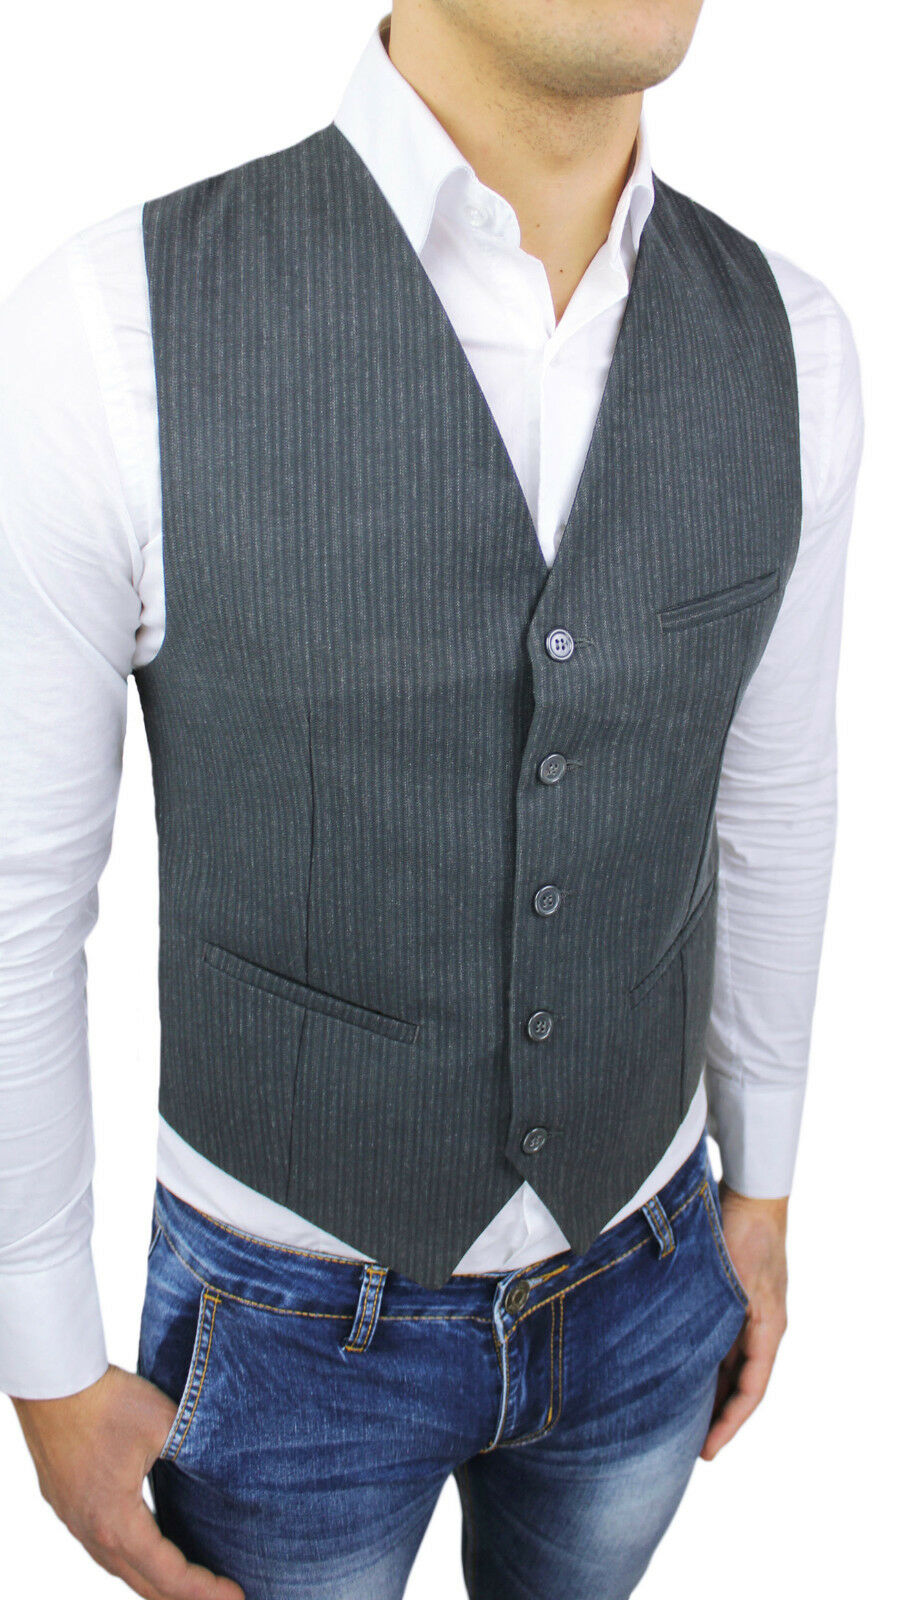 SLEEVELESS MAN ALESSANDRO GILLES WINTER GREY CASUAL VEST FANTASY STRIPED